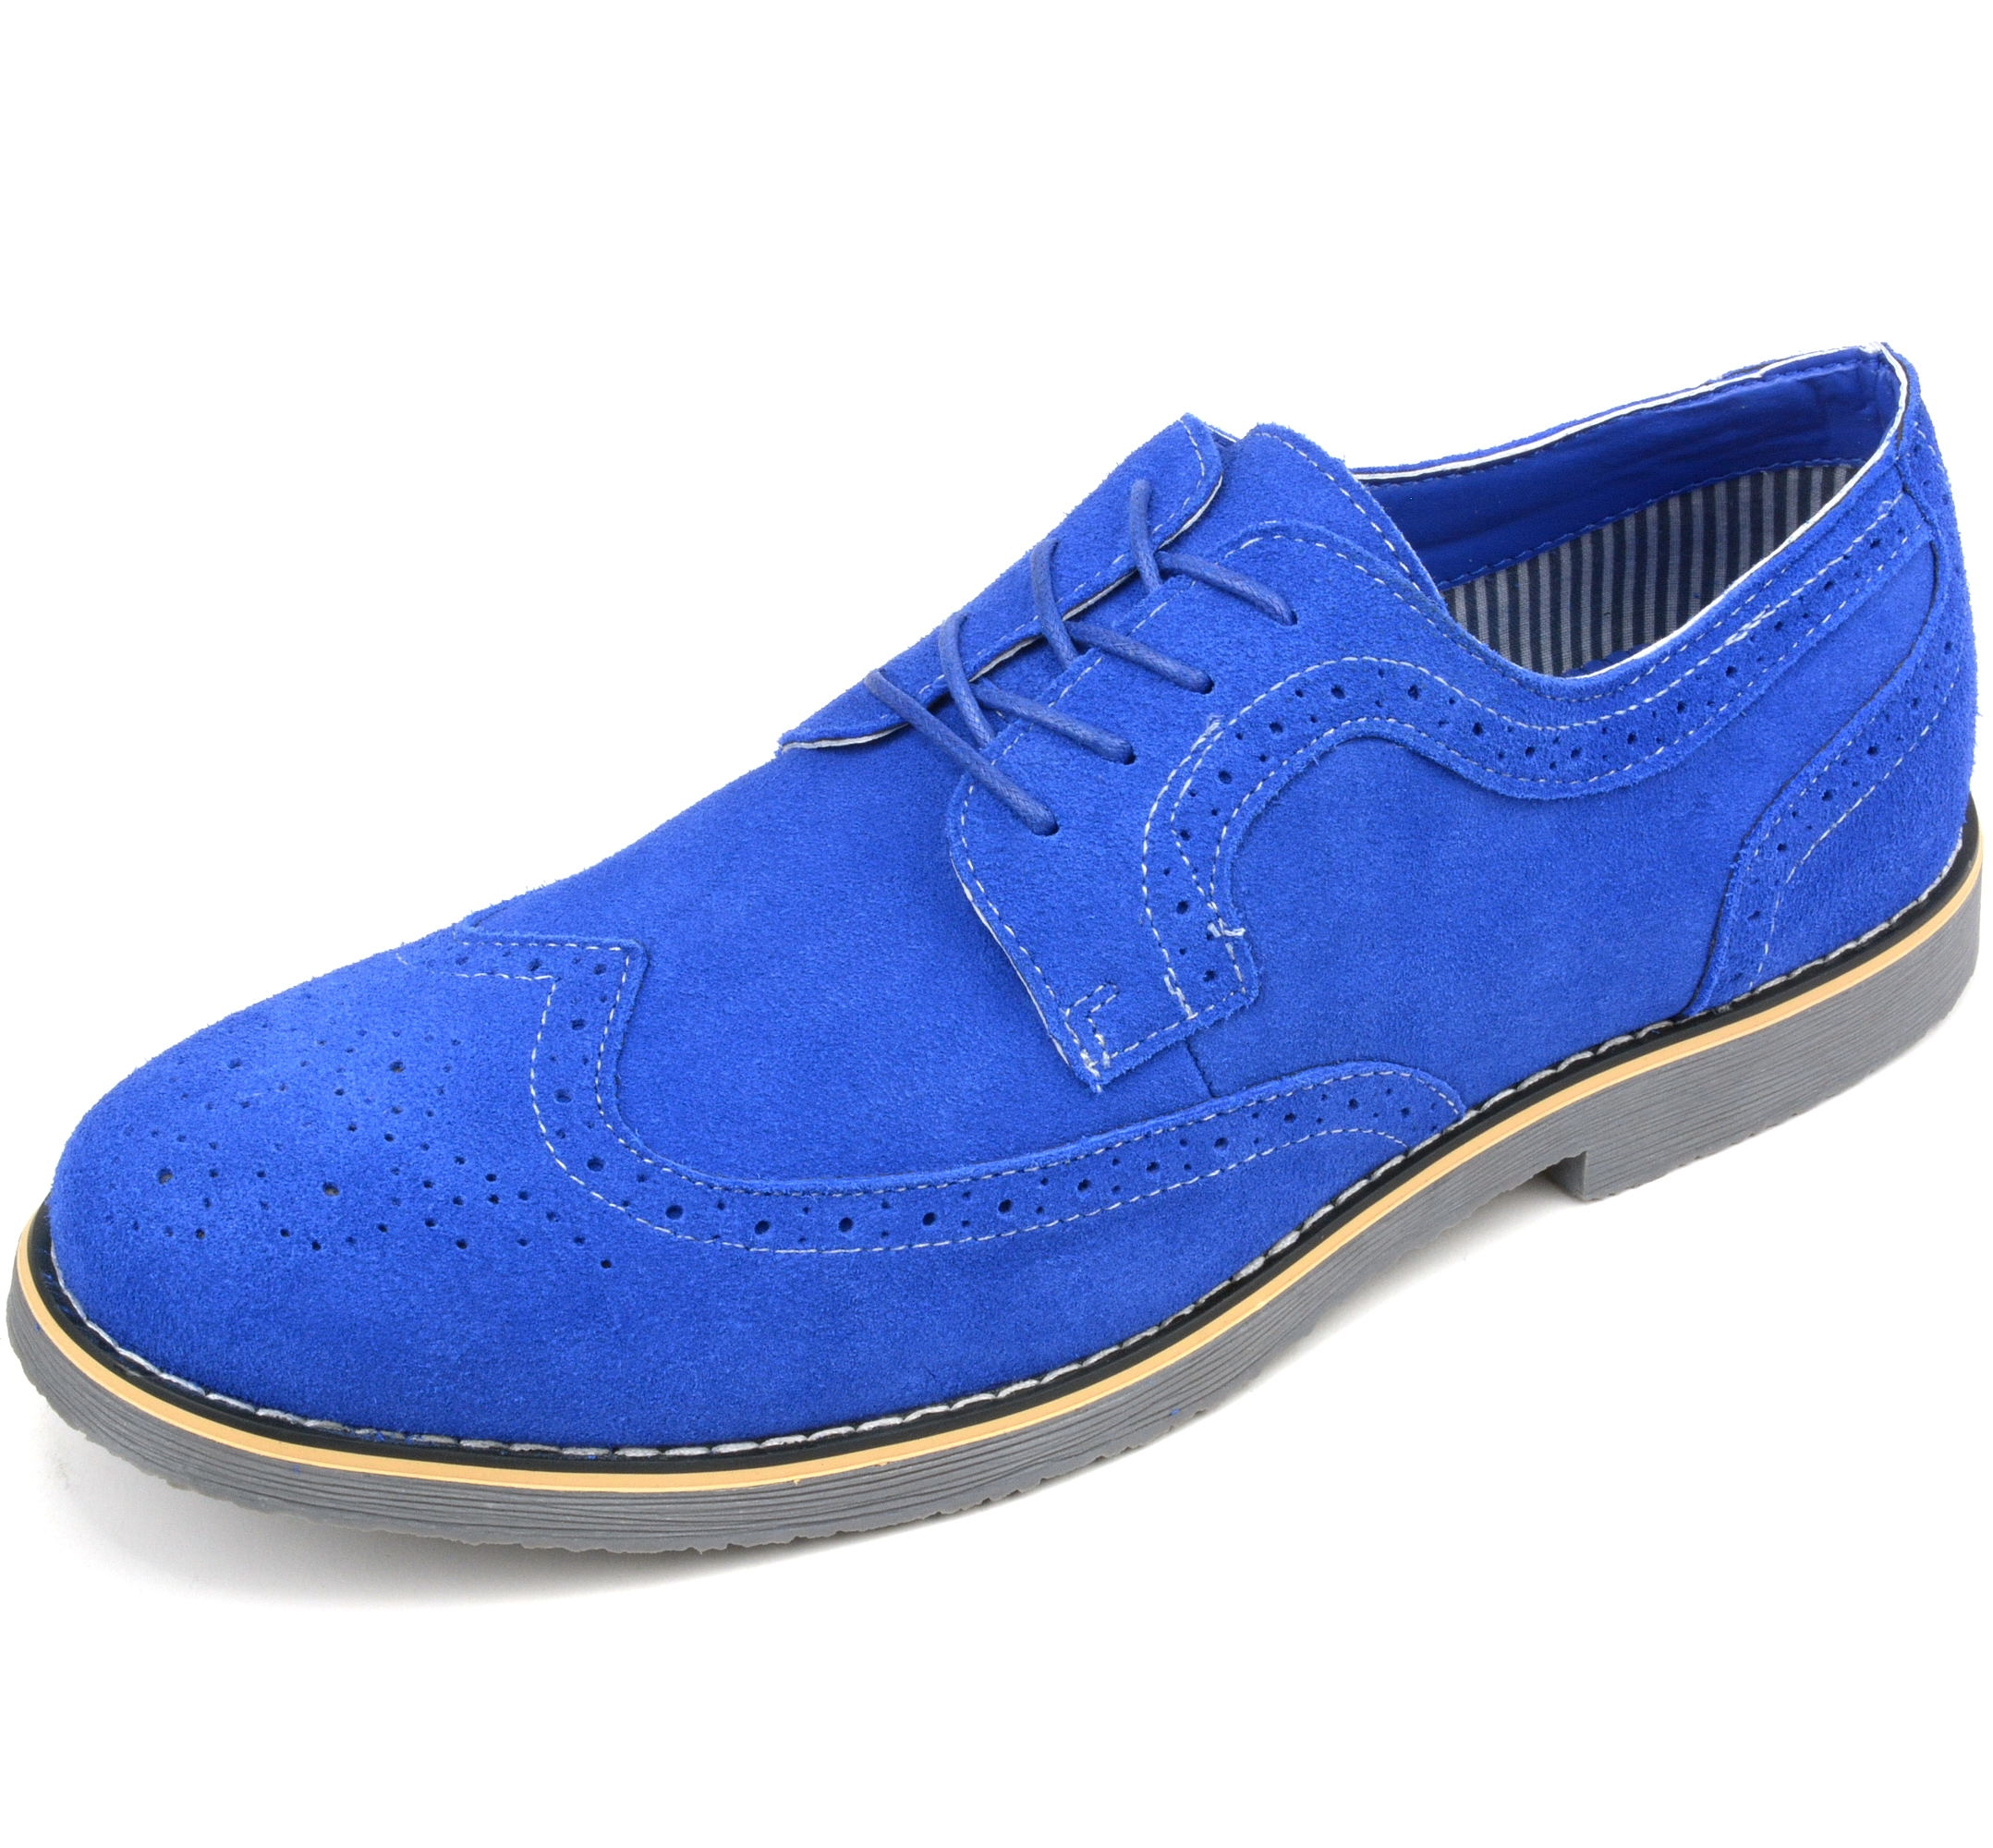 Alpine-Swiss-Beau-Mens-Dress-Shoes-Genuine-Suede-Wing-Tip-Brogue-Lace-Up-Oxfords thumbnail 32